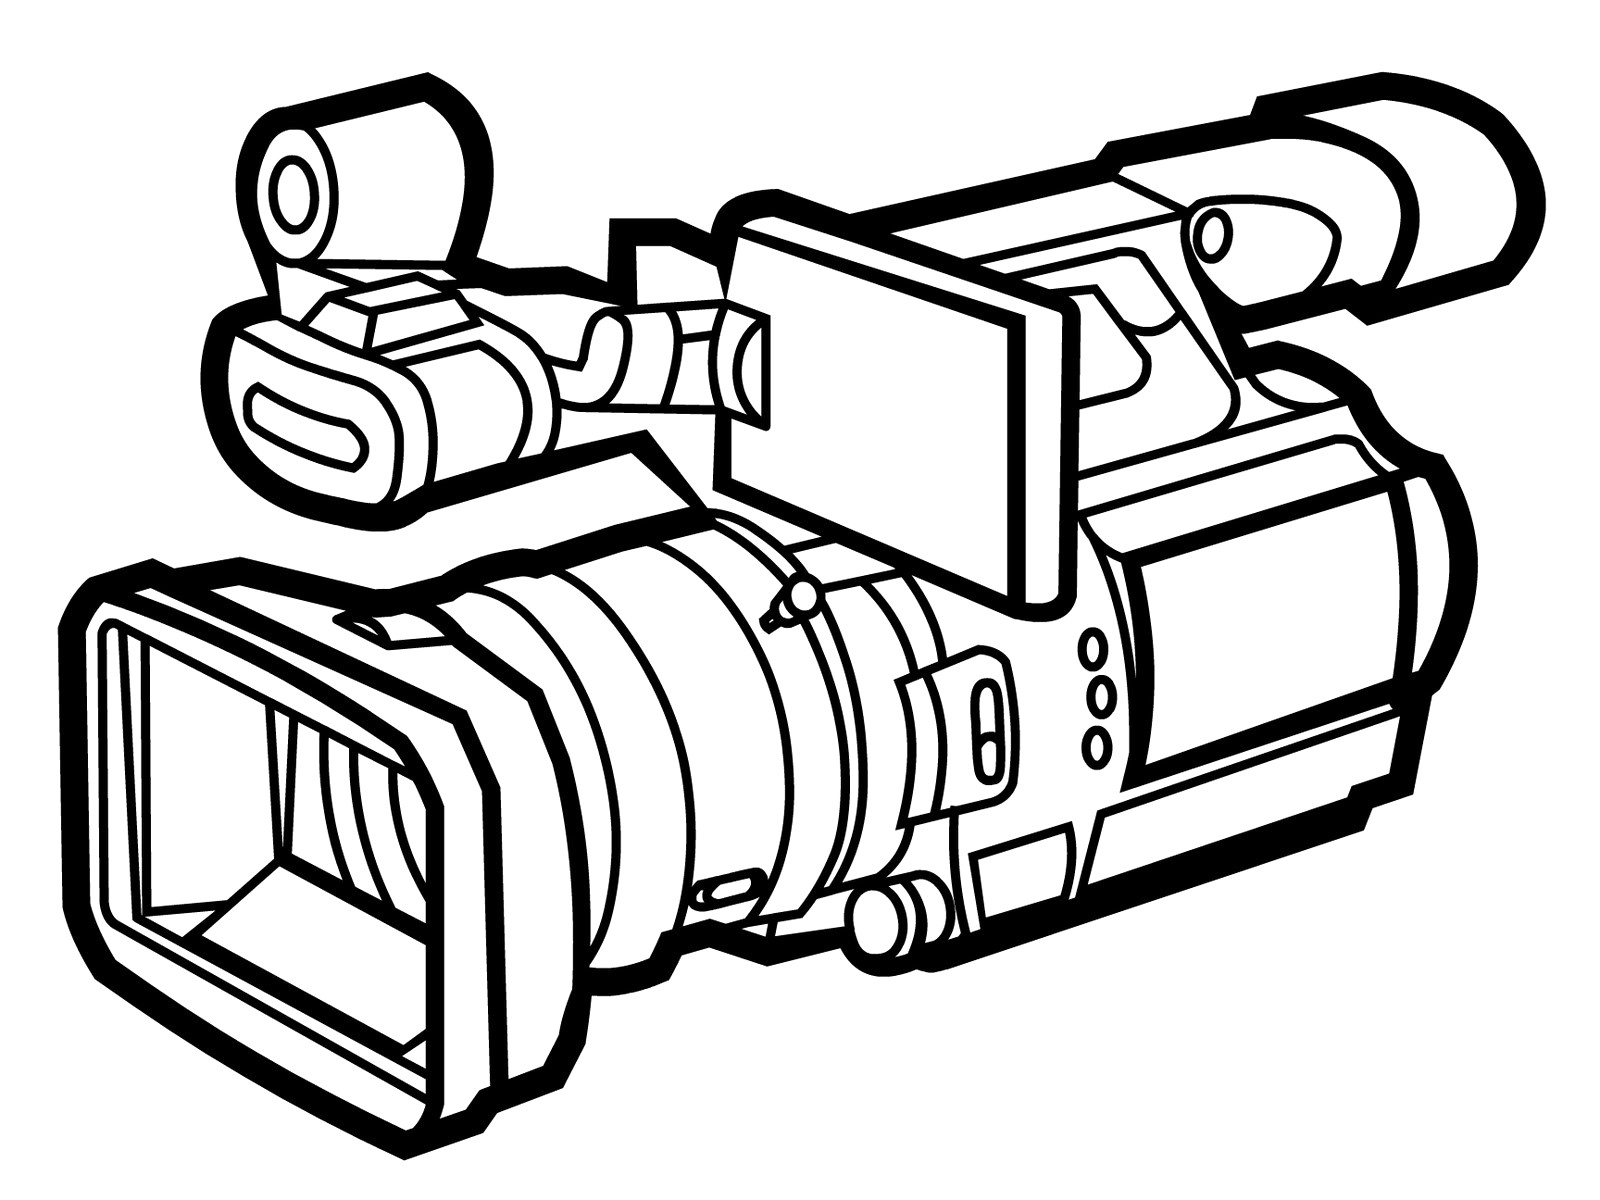 Camcorder clipart clip royalty free stock Camcorder clipart 3 » Clipart Station clip royalty free stock